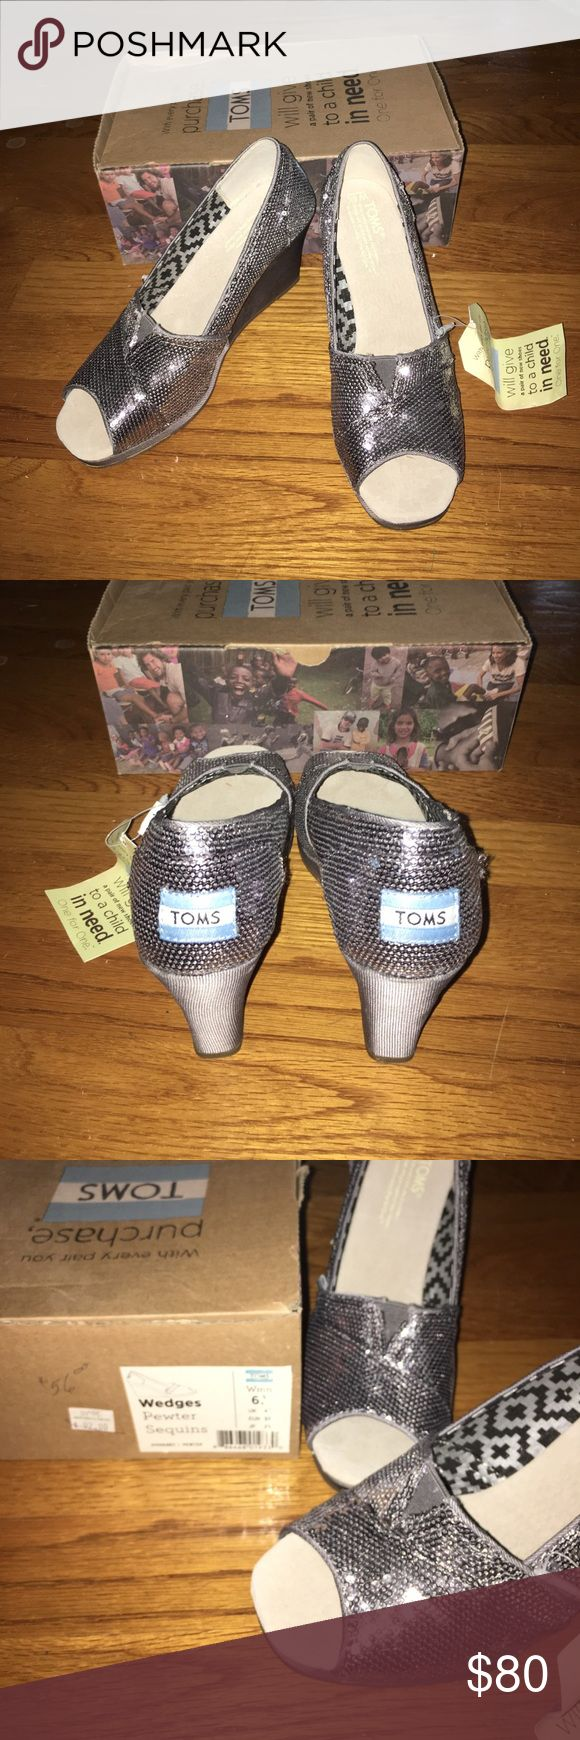 NWT Toms Pewter Sequins Wedges NWT. Brand New! Never been worn besides to try on! Size 6 1/2. Pewter Sequin wedges. Shoebox, Toms flag, and Toms sticker are all included! TOMS Shoes Wedges